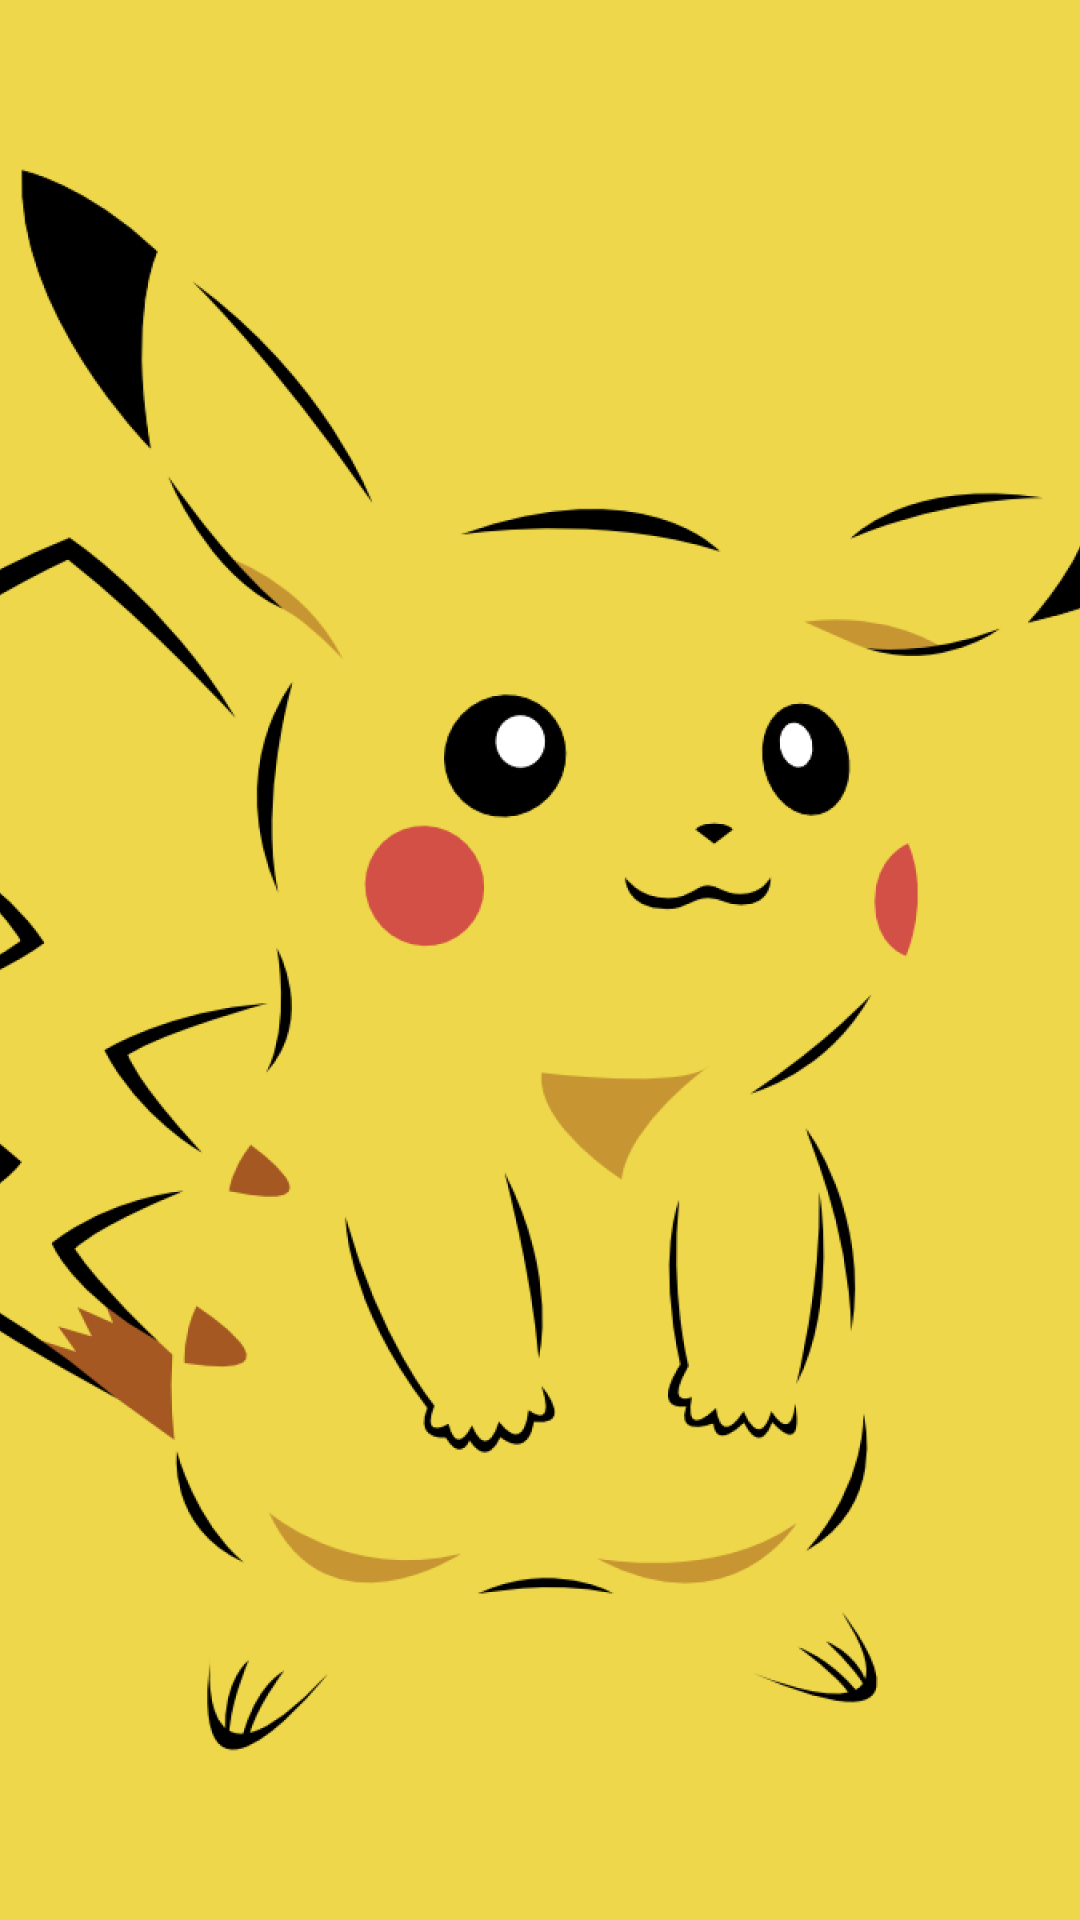 Pikachu Hd Wallpapers For Iphone 6 Plus Wallpapers